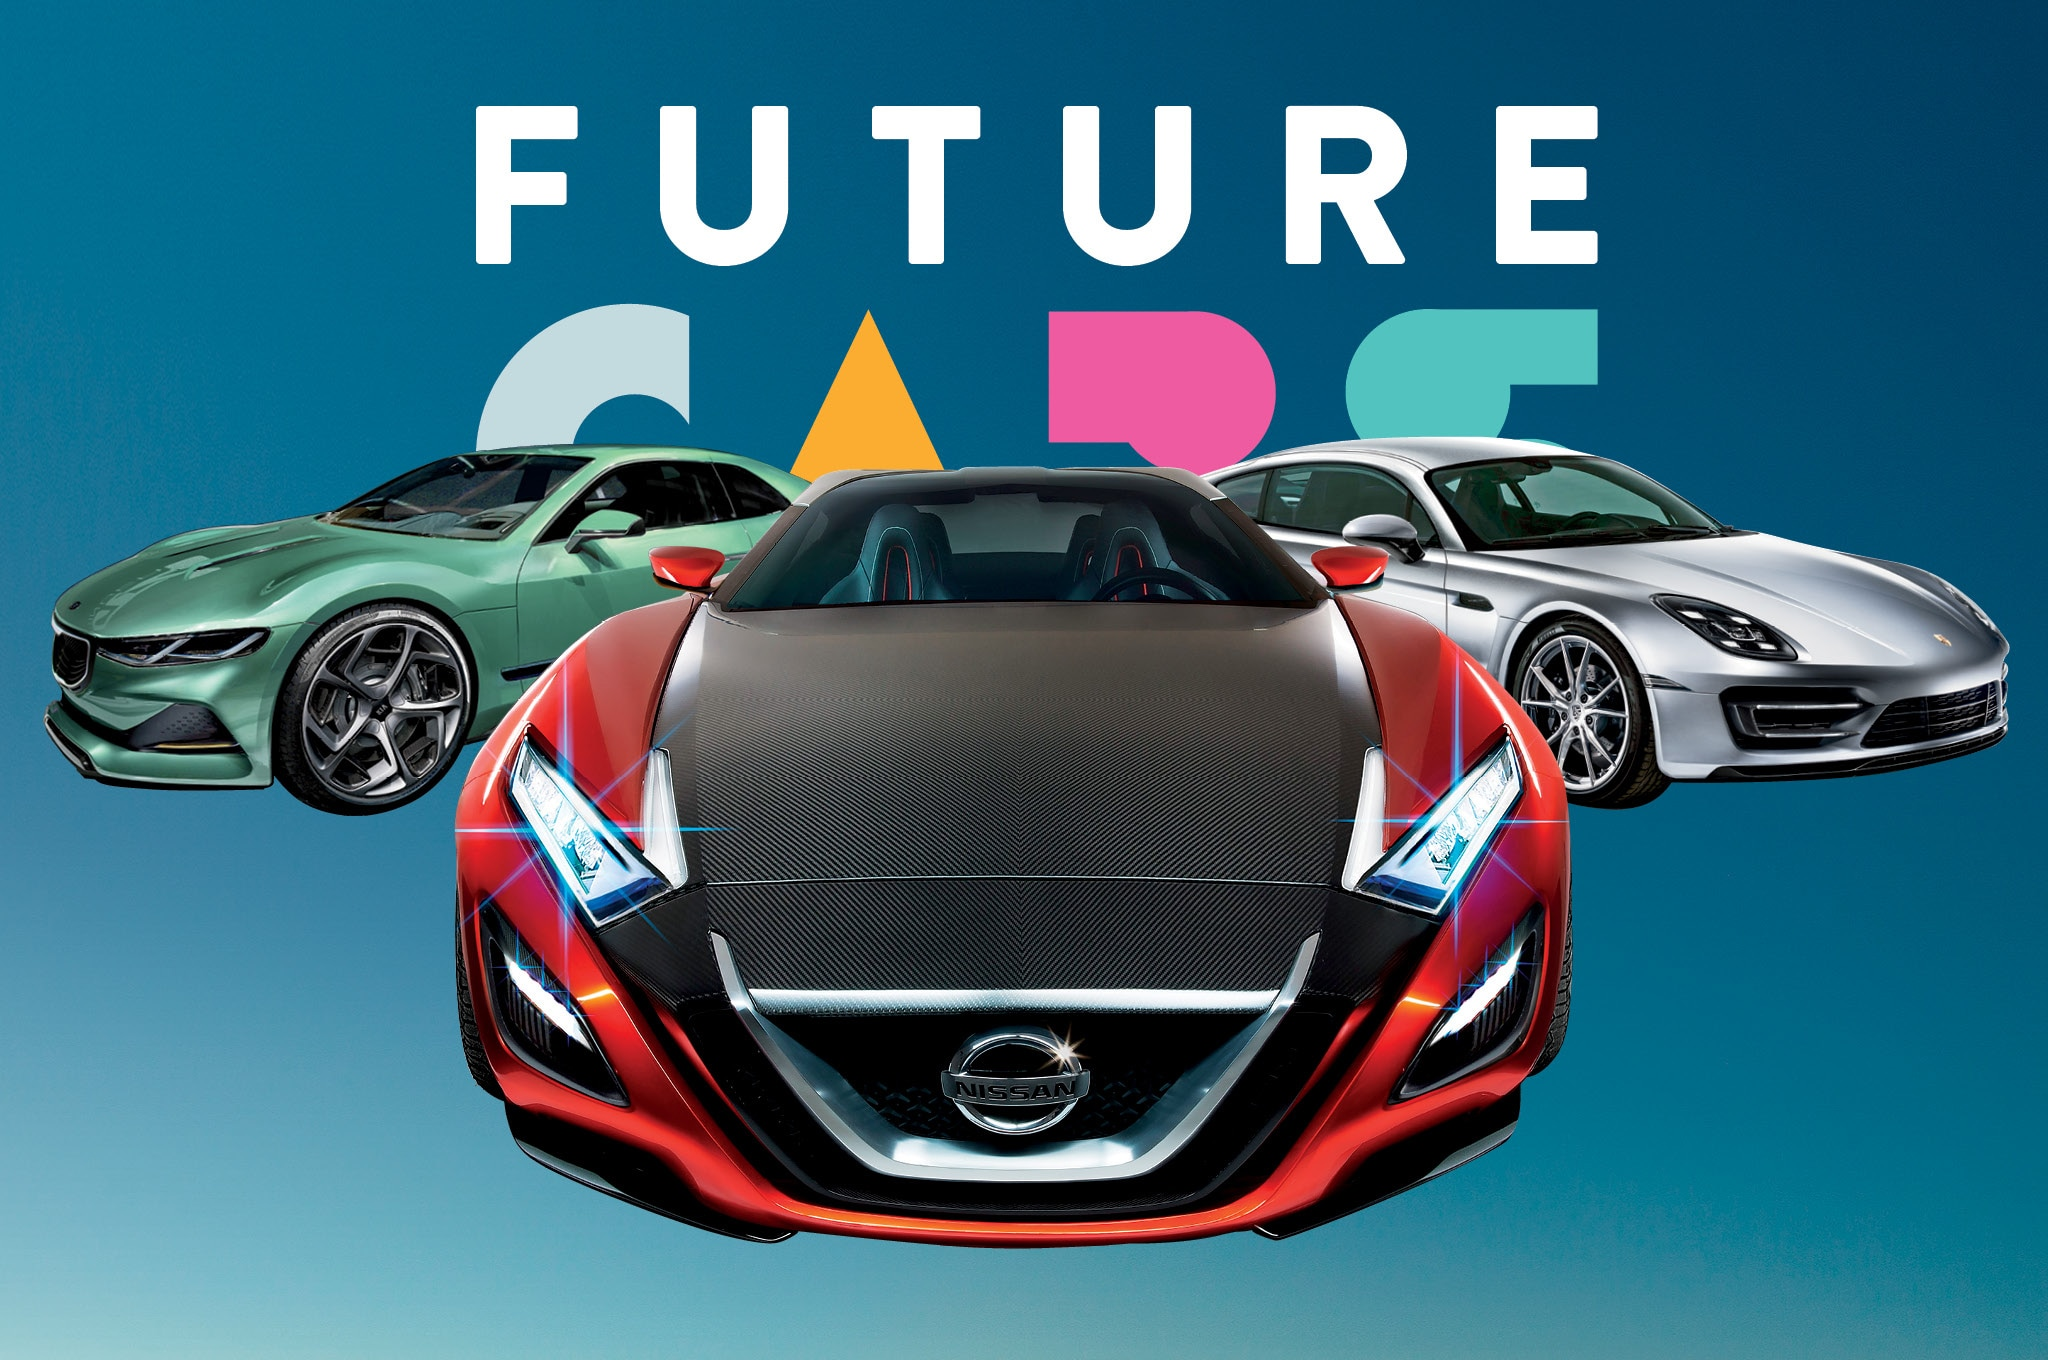 Cars Of The Future 25 Future Cars You Won 39t Want To Miss Automobile Magazine